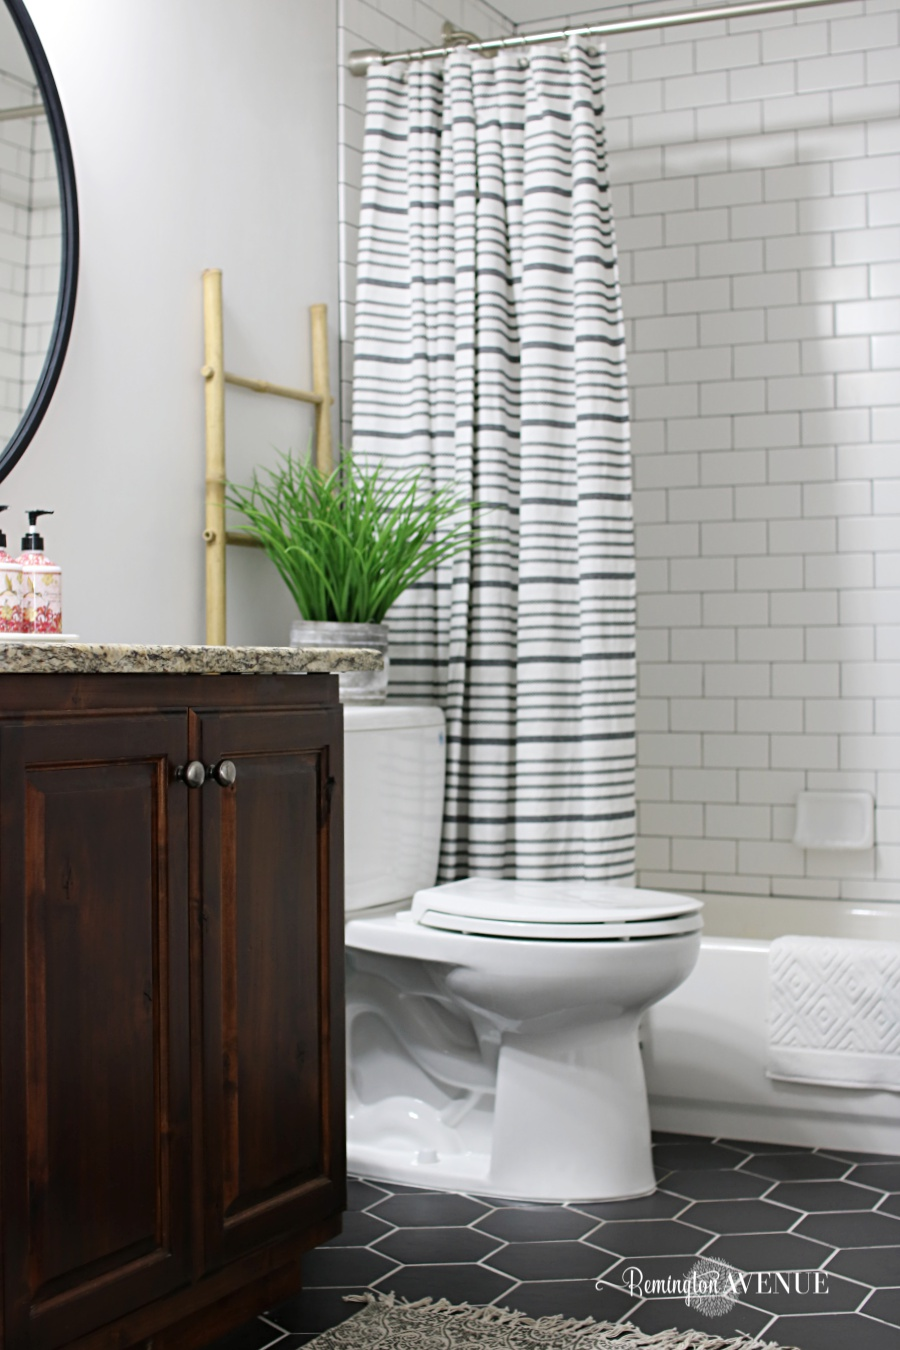 10 Kitchen And Home Decor Items Every 20 Something Needs: Guest Bathroom Renovation